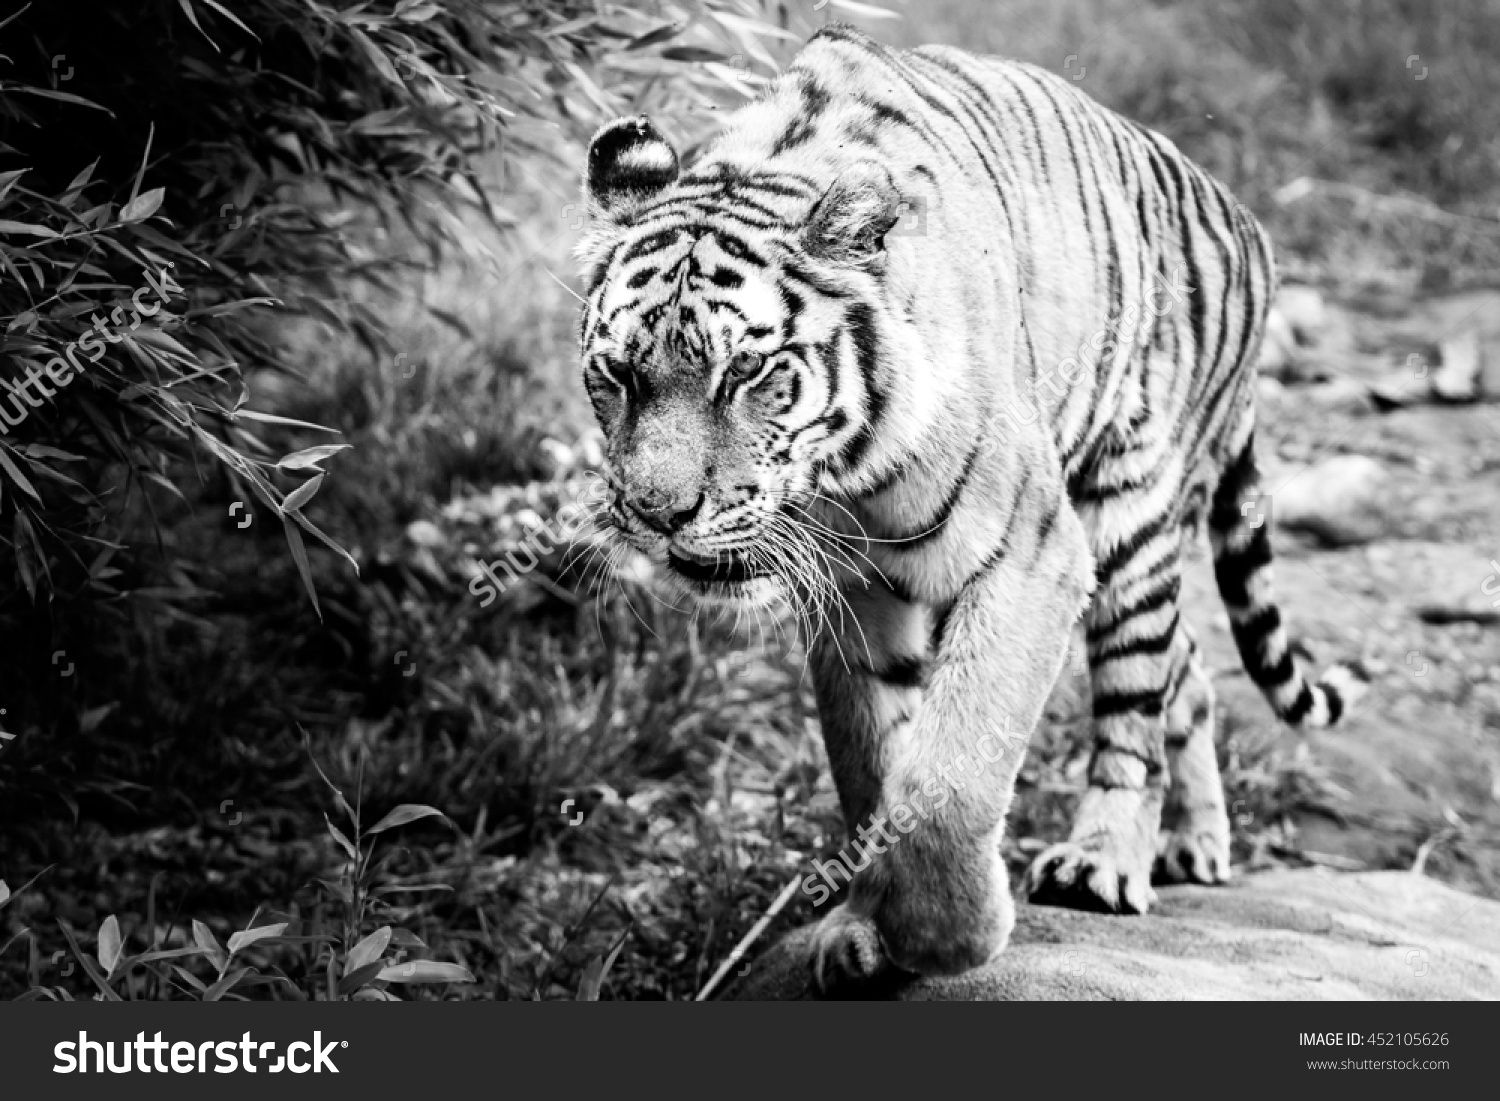 Sneaky Tiger - Black And White Stock Photo 452105626 : Shutterstock